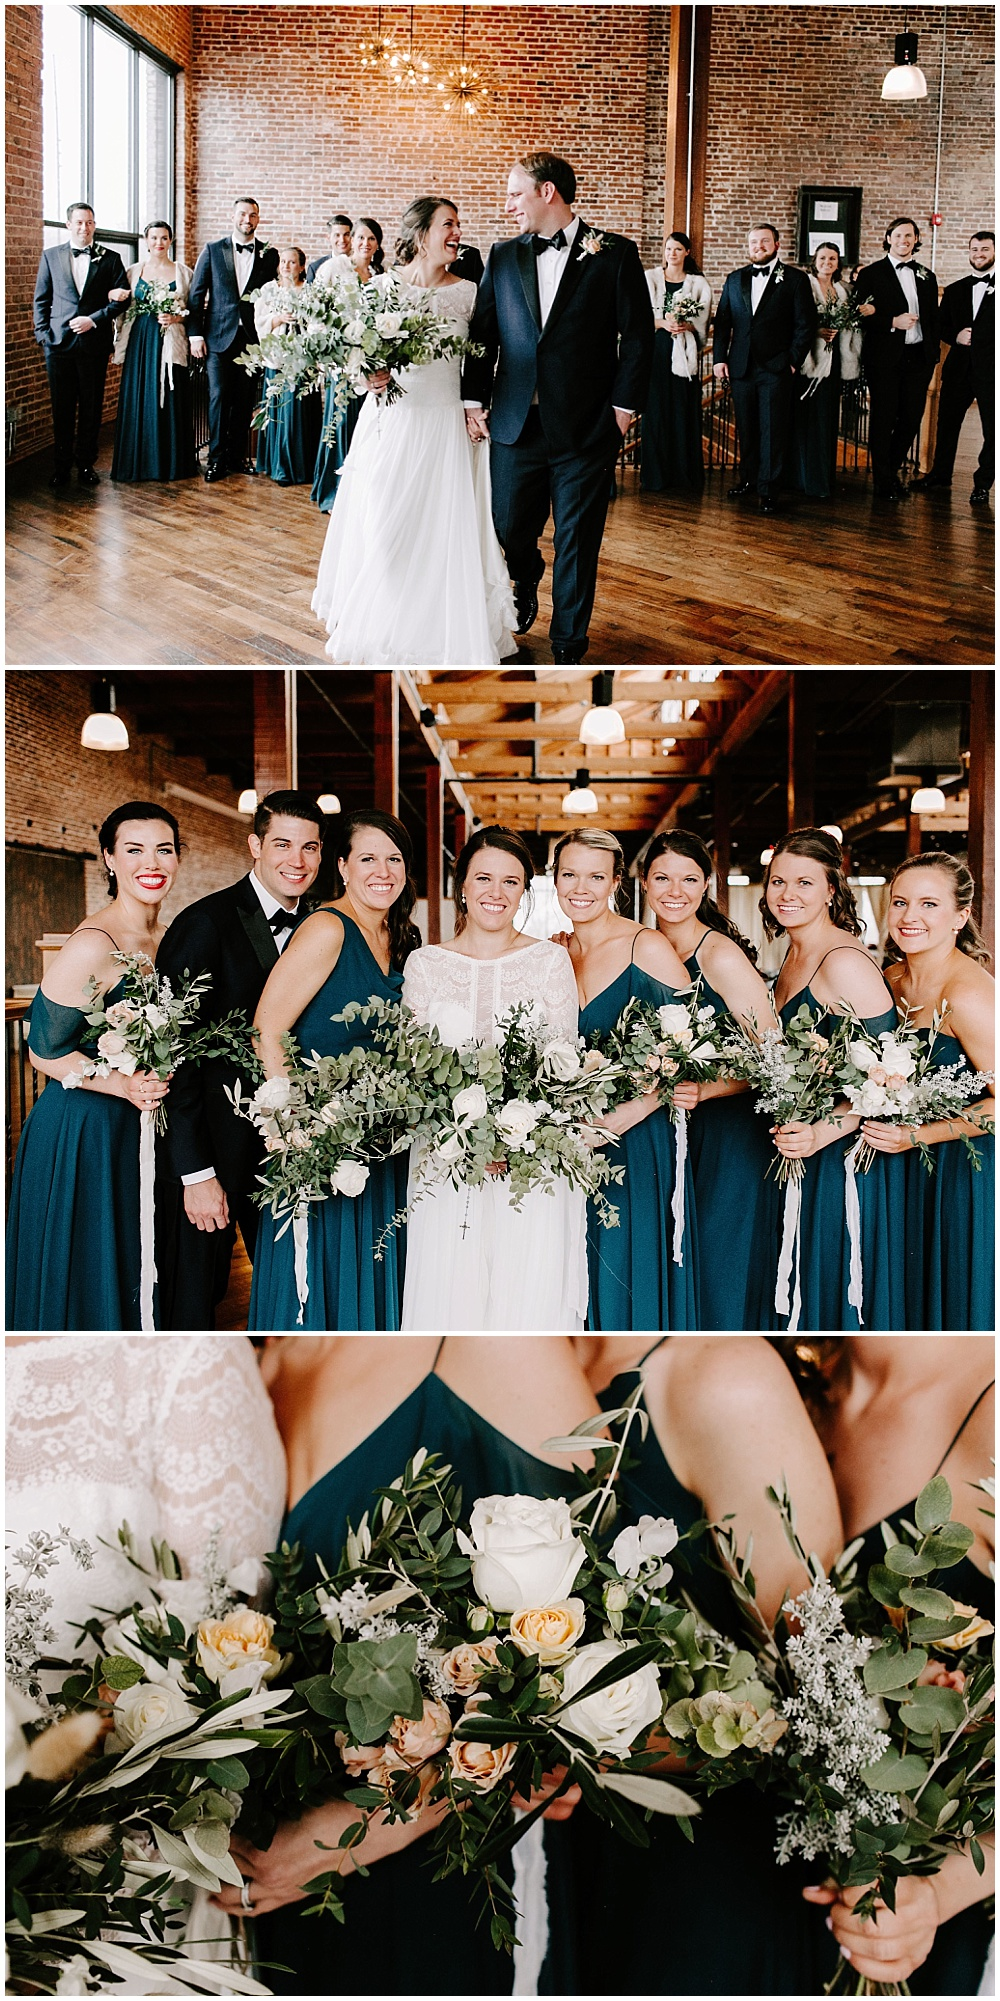 Bridal Party portraits. | Industrial winter wedding at the Biltwell Event Center in downtown Indianapolis alongside Emily Wehner Photography and Jessica Dum Wedding Coordination